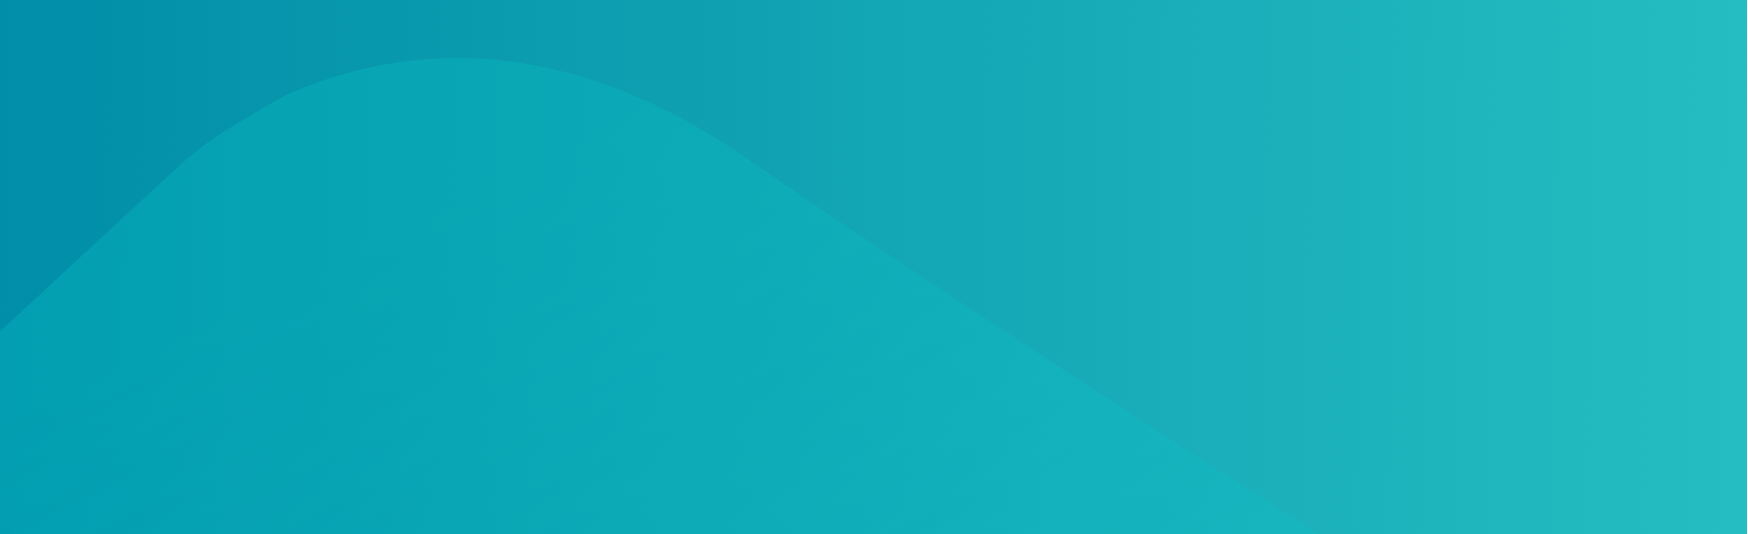 Footer - Blue Gradient